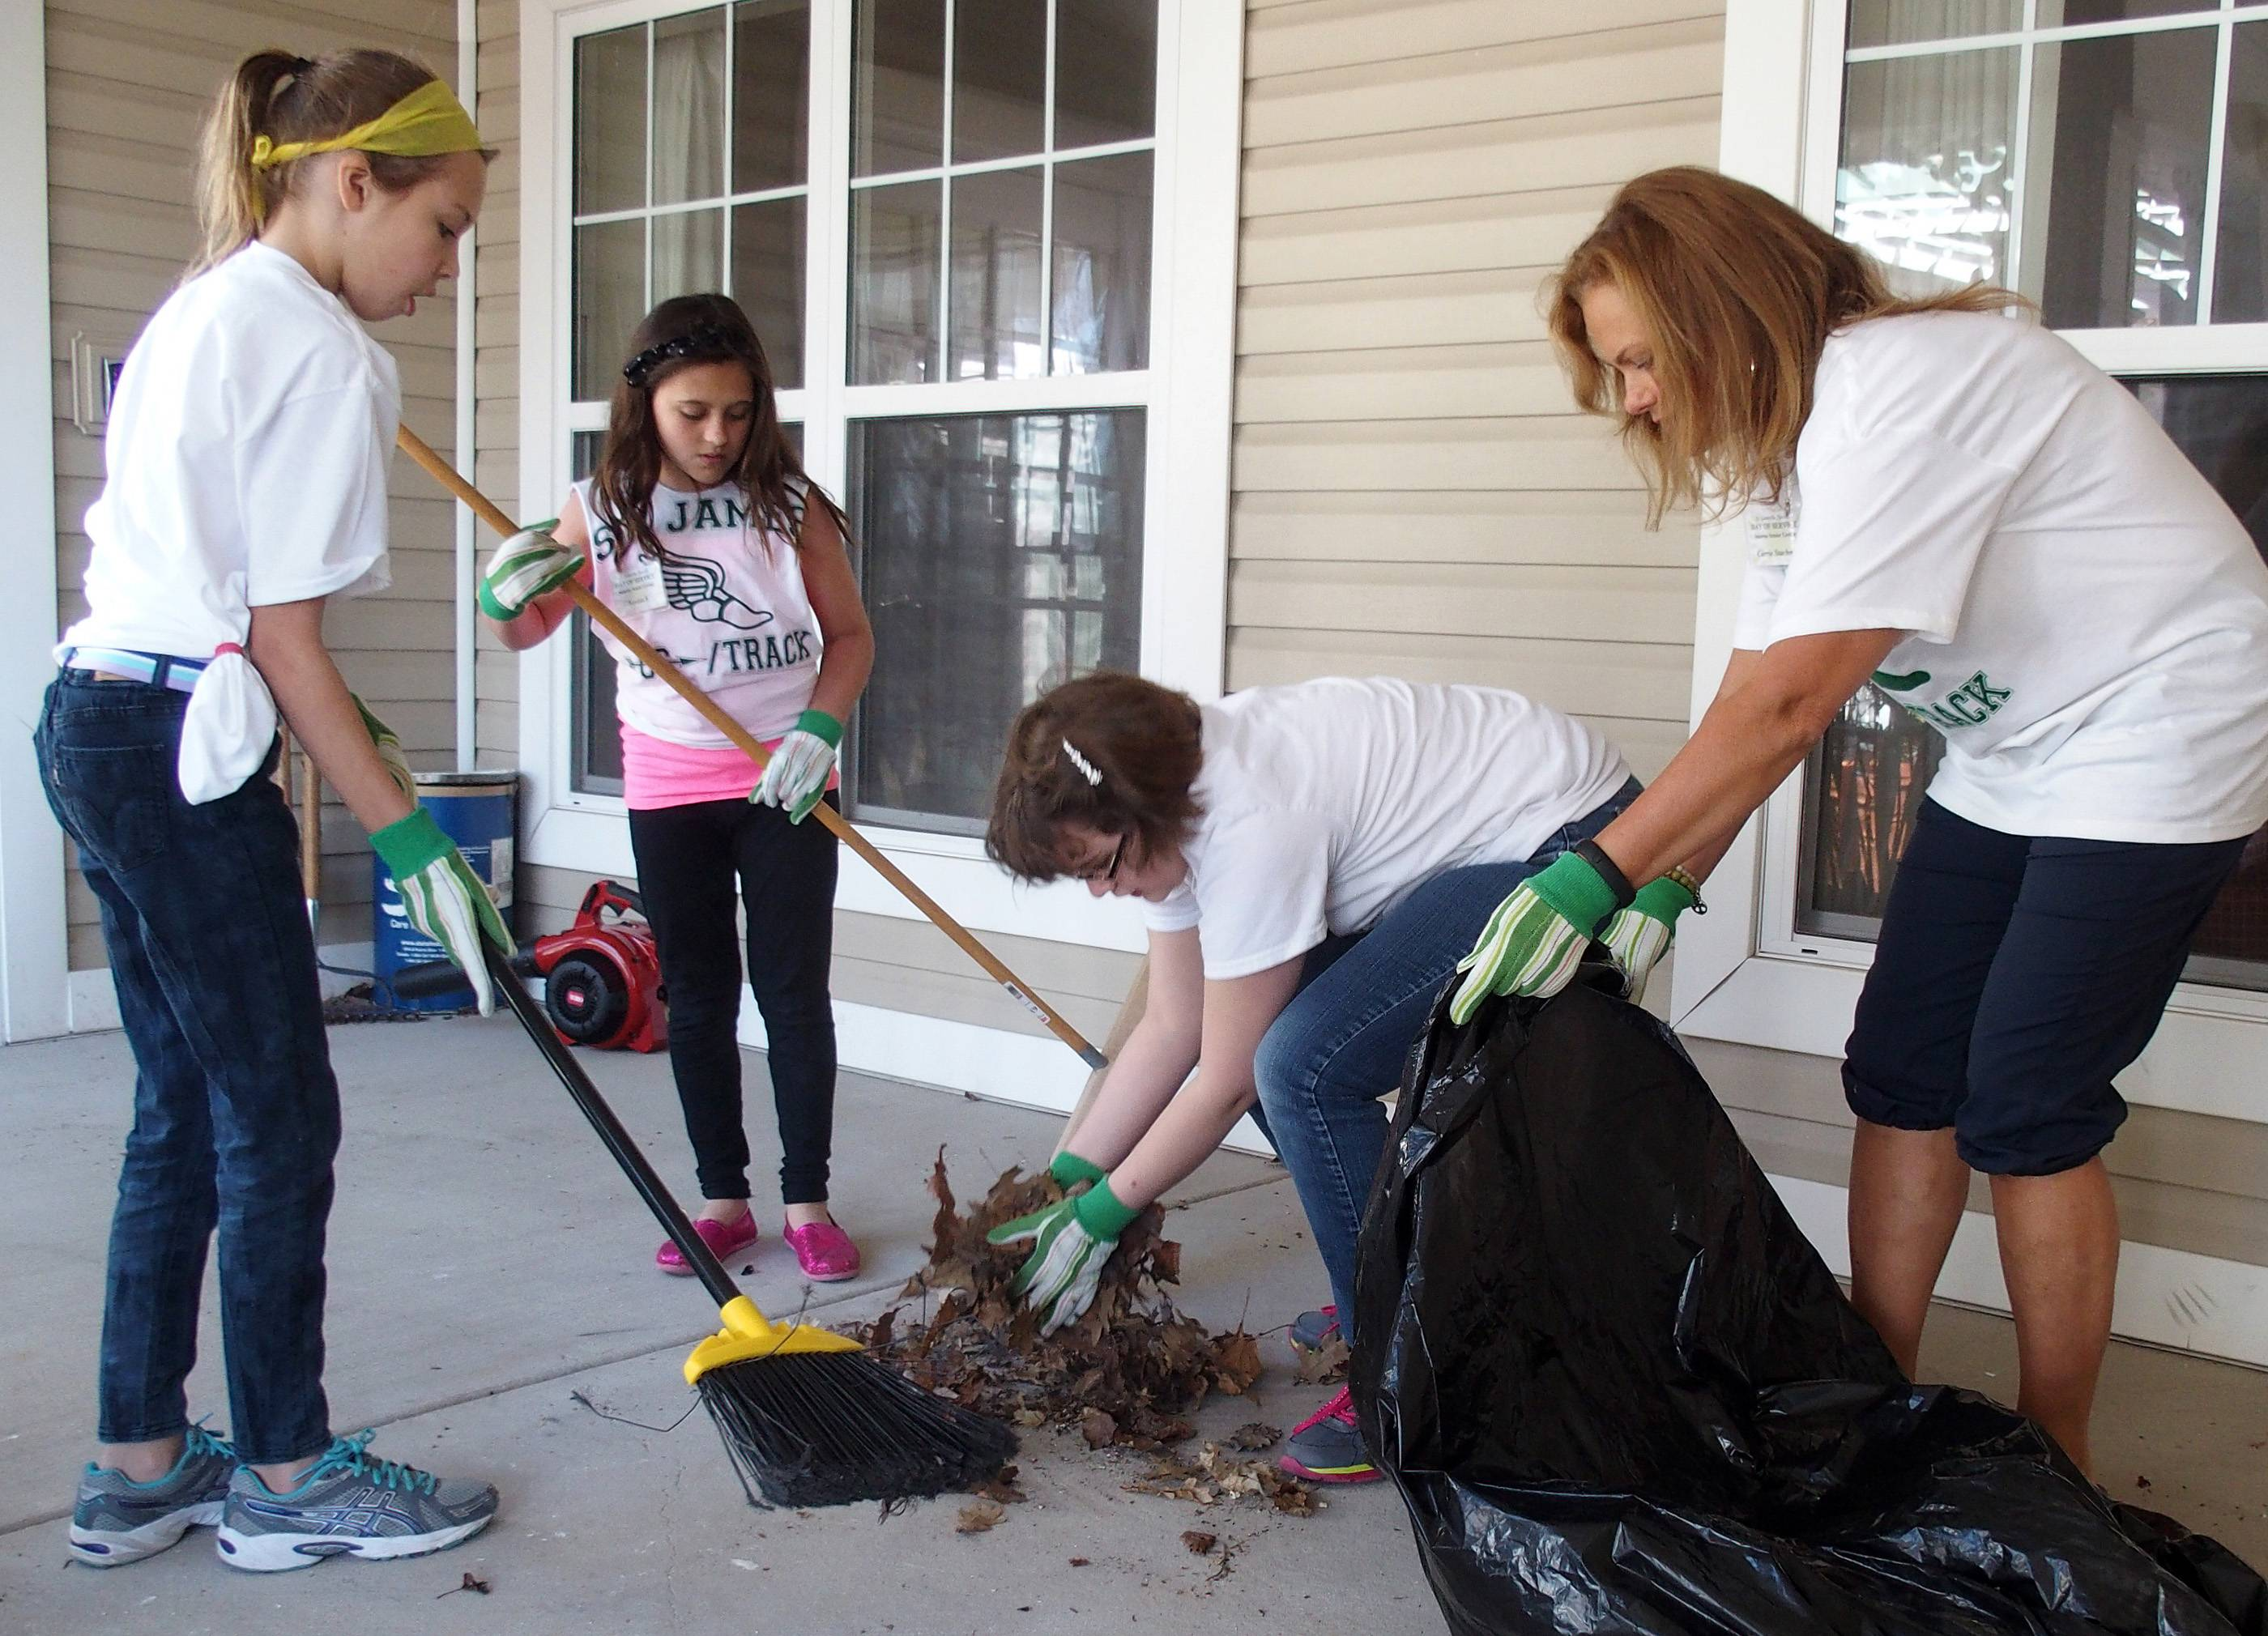 Students from Glen Ellyn's St. James the Apostle School recently participated in a Day of Service project in which they tackled grade-appropriate activities at their school and 16 locations across Glen Ellyn. Some students, including Emma Nielsen, Sophia Stachnik and Gillian Weesner, joined volunteer mom Carrie Stachnik, right, in cleaning up the porch at Sunrise Senior Living Center and Brighton Gardens.